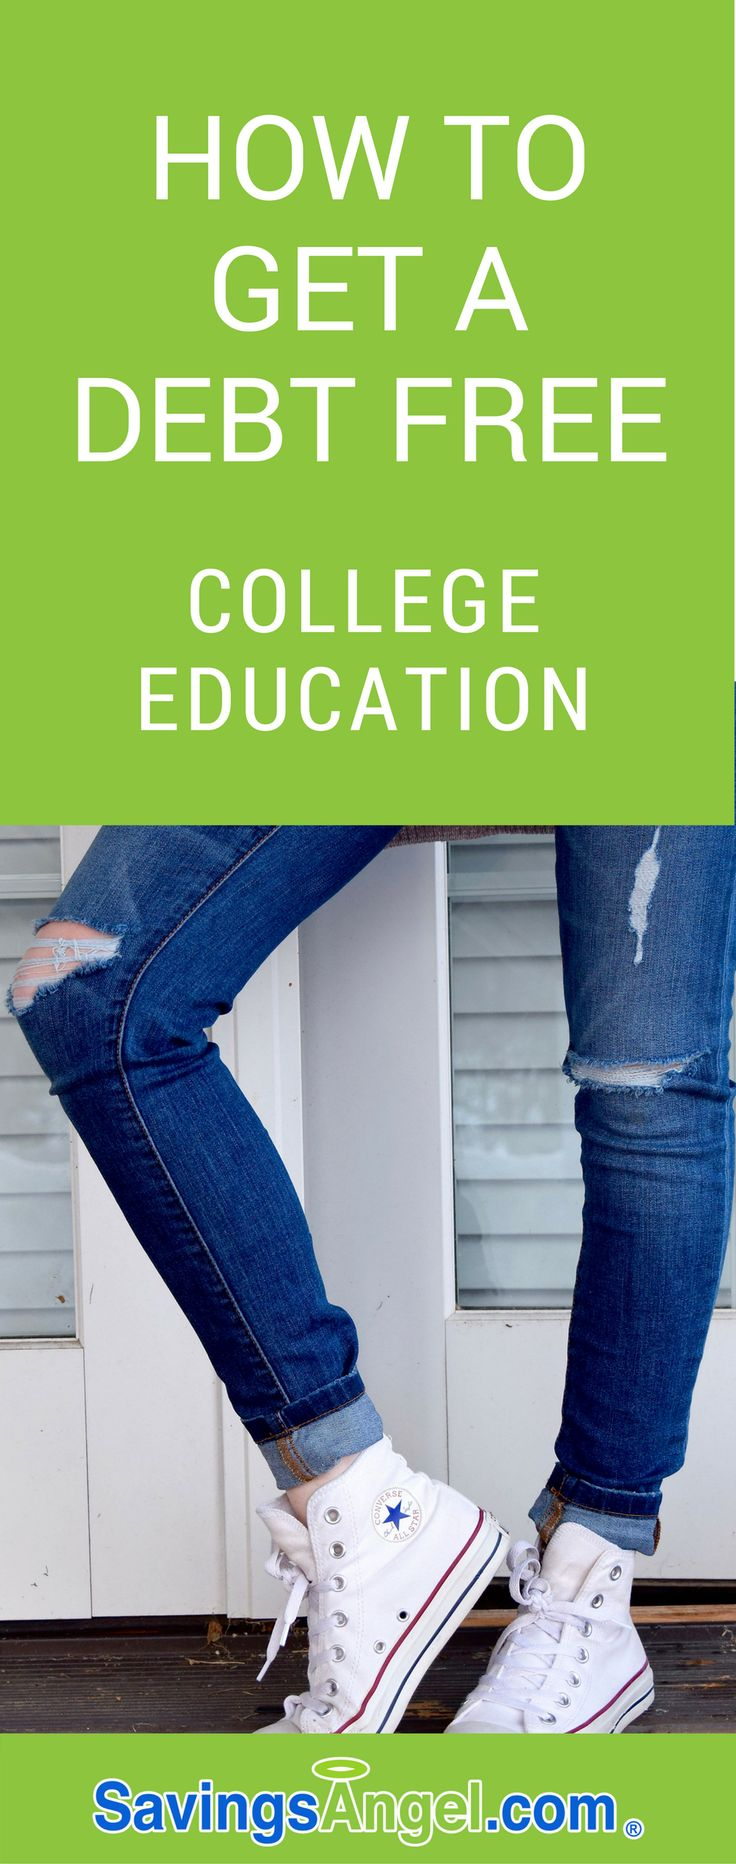 How to get a debt free college education two ways. How to get scholarships! First we'll chat with Jocelyn Paonita of The Scholarship System, where we'll discuss applying for, and landing, college scholarships – regardless of grades or athletic ability. There are scholarships out there for everyone! Then we'll talk with Wayne Weber of Gift of College about how you can now buy gift cards – yes, gift cards – to help pay for someone's college. Still paying a college loan off? How about asking…